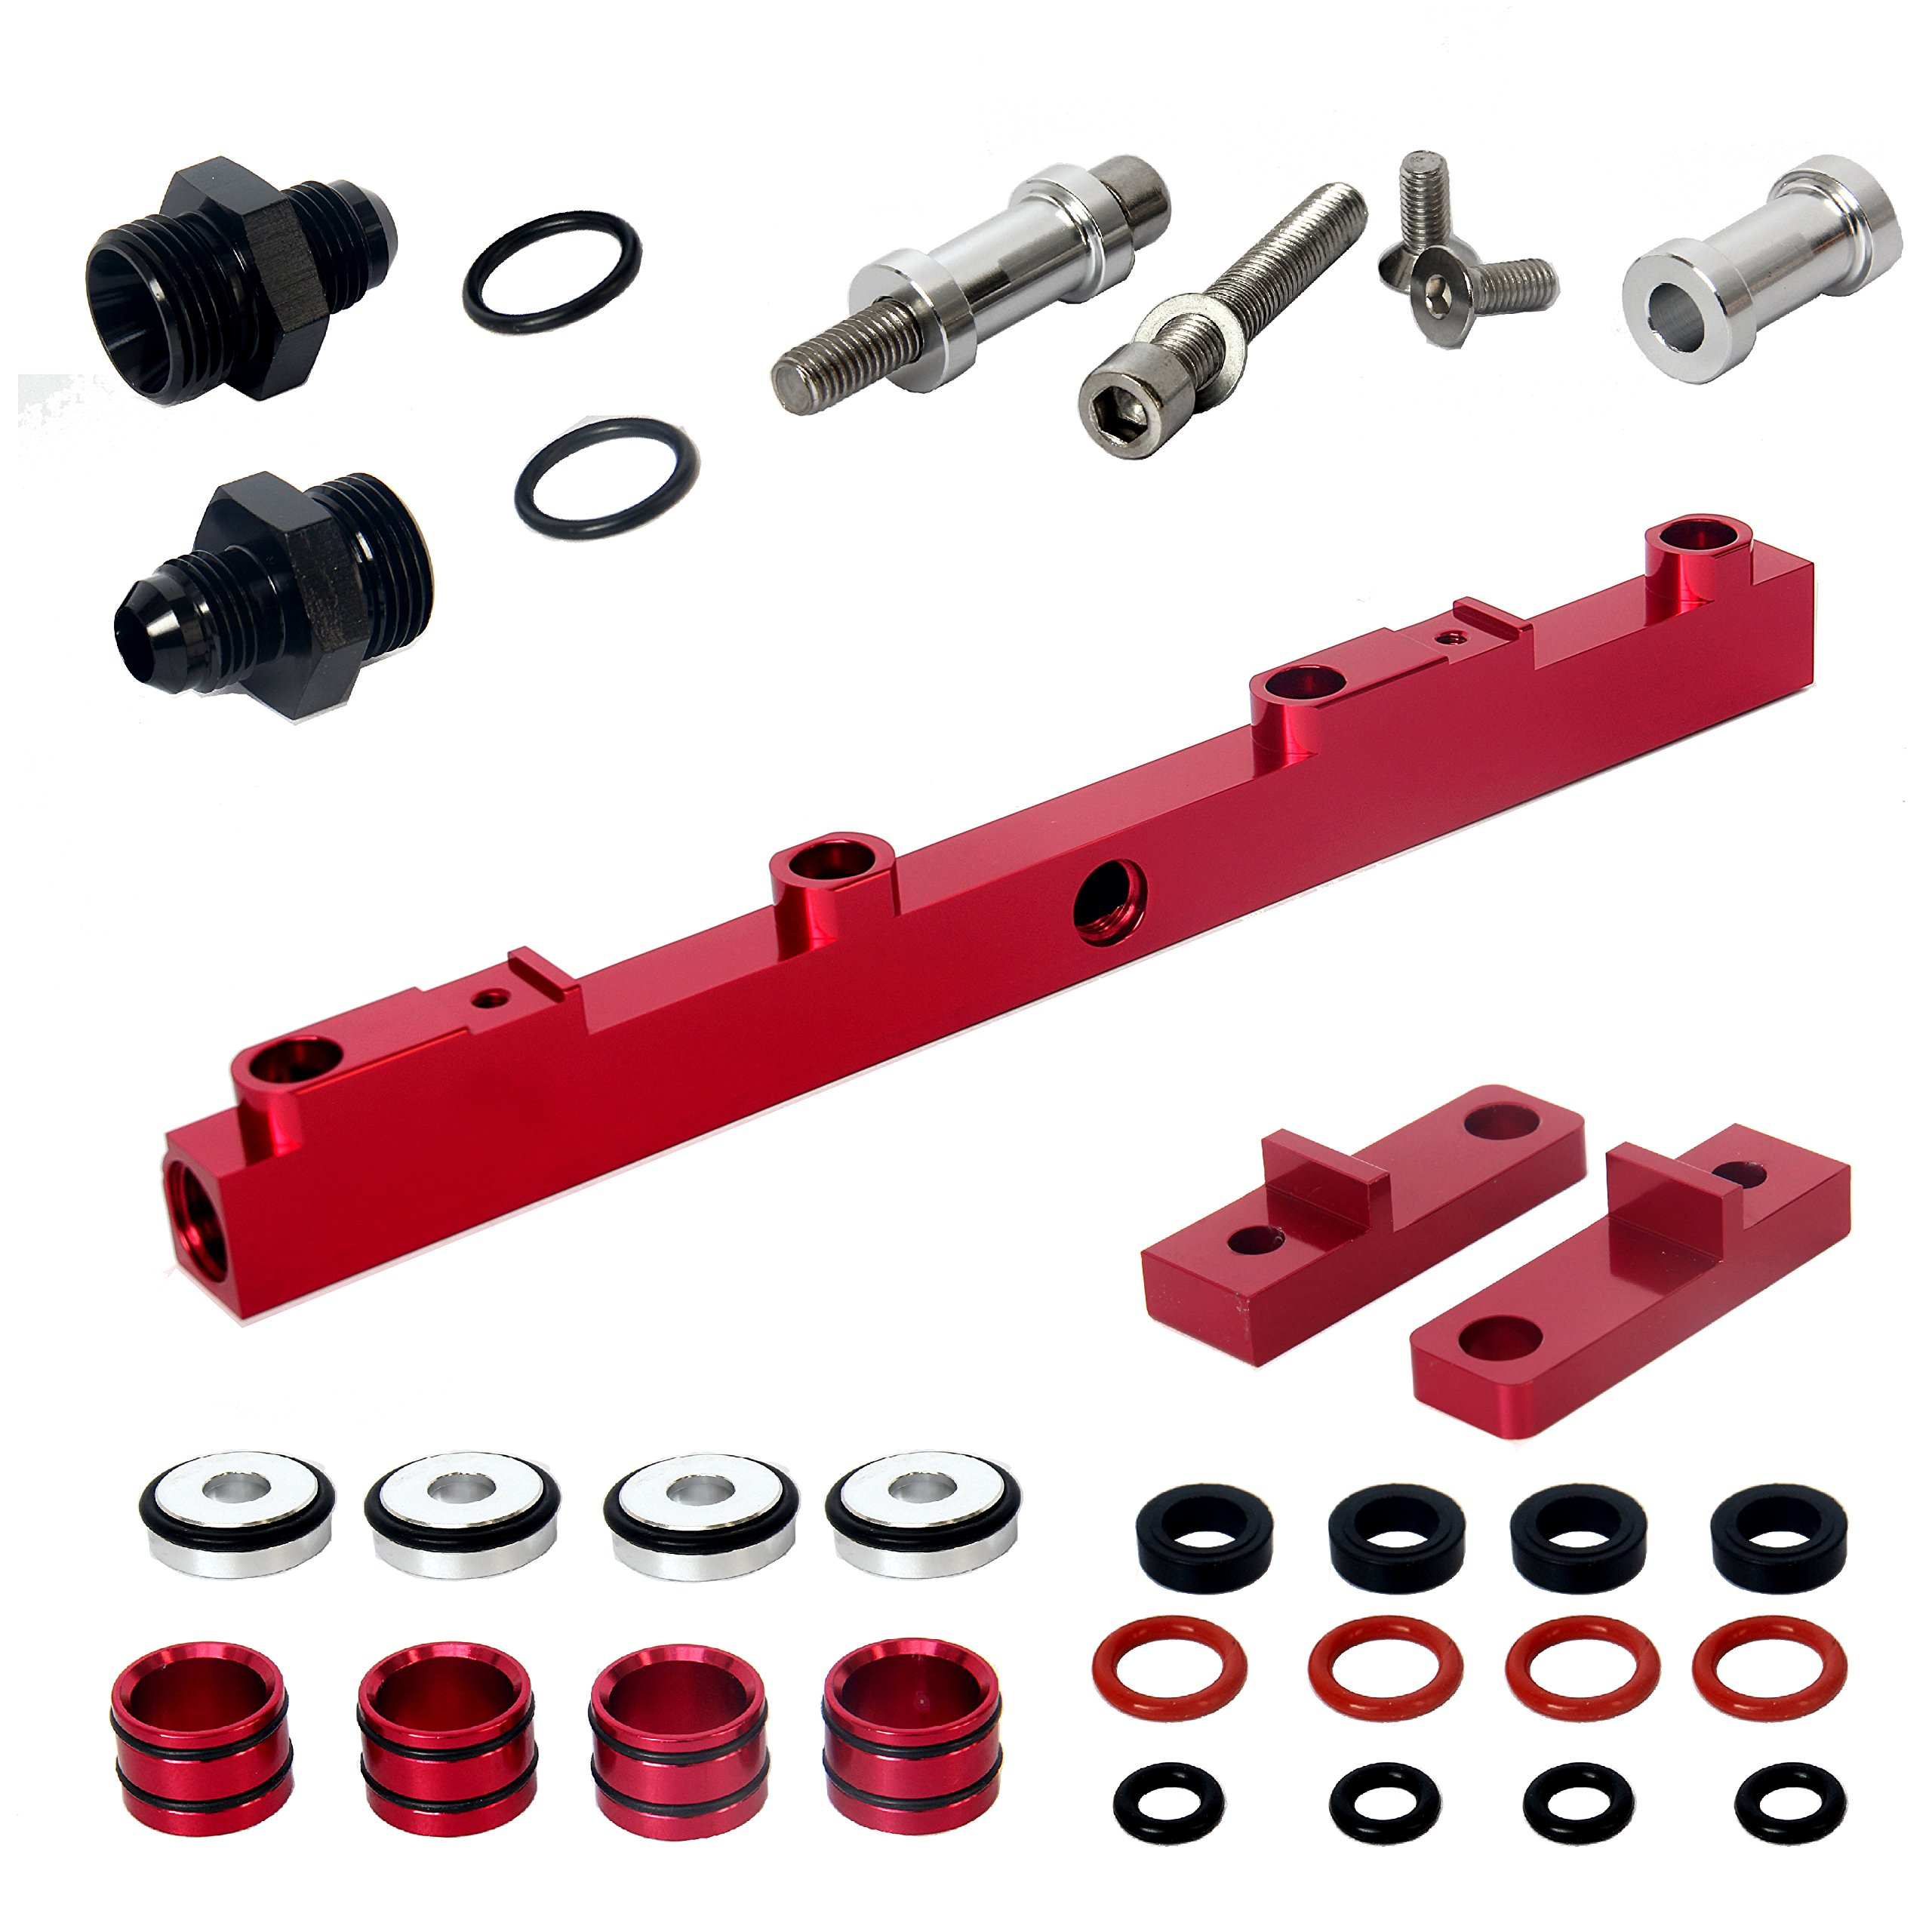 Heavy Duty Mounts Billet Aluminum Top Feed High Flow EFI Fuel Injector Rails Kit Suit for NISSAN SR20, Red Anodized by AC PERFORMANCE